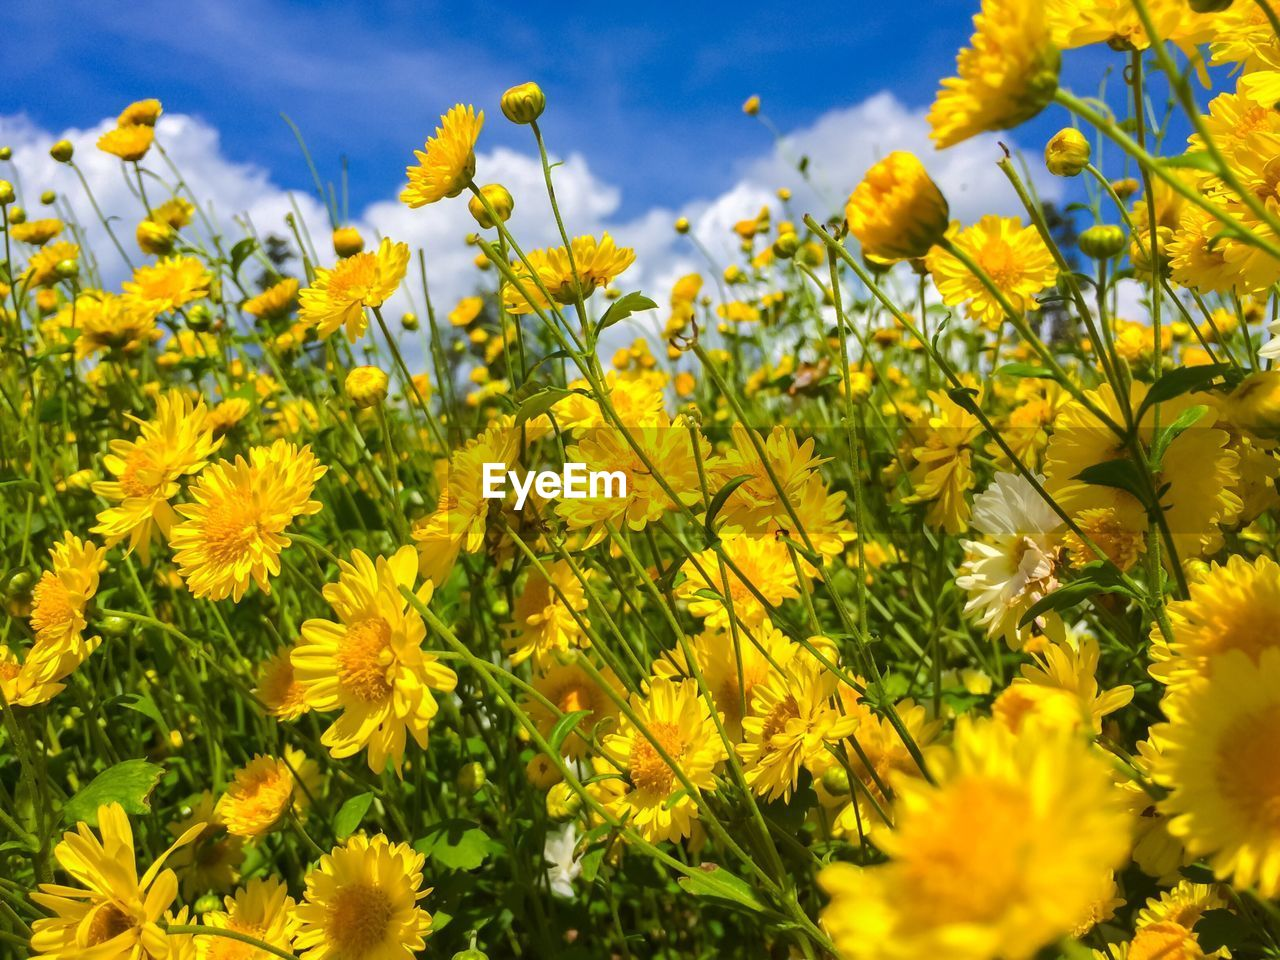 flowering plant, flower, yellow, plant, beauty in nature, freshness, vulnerability, growth, fragility, close-up, petal, day, nature, field, land, flower head, no people, inflorescence, focus on foreground, selective focus, outdoors